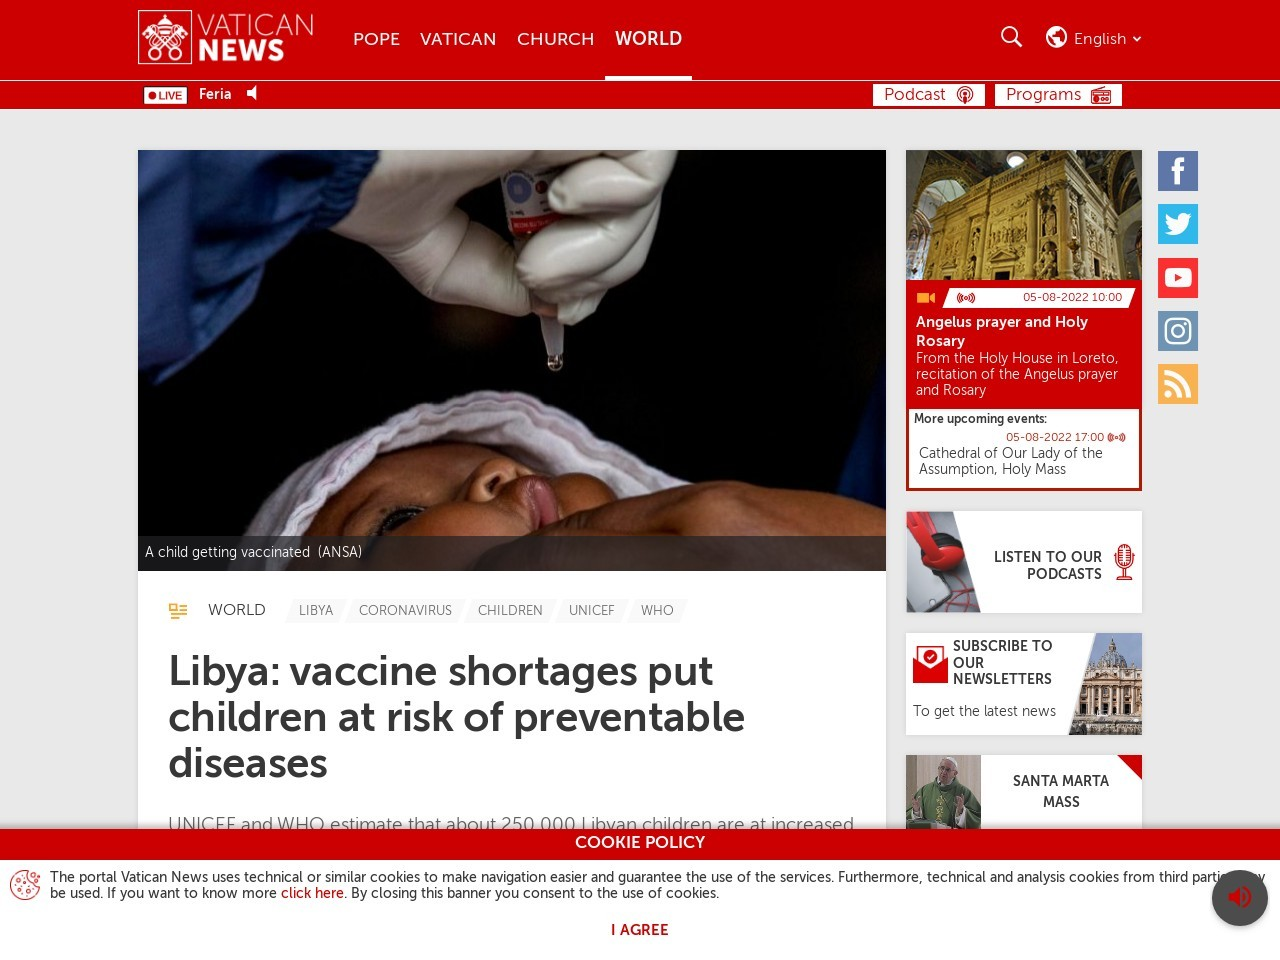 Libya: vaccine shortages put children at risk of preventable diseases - Vatican News